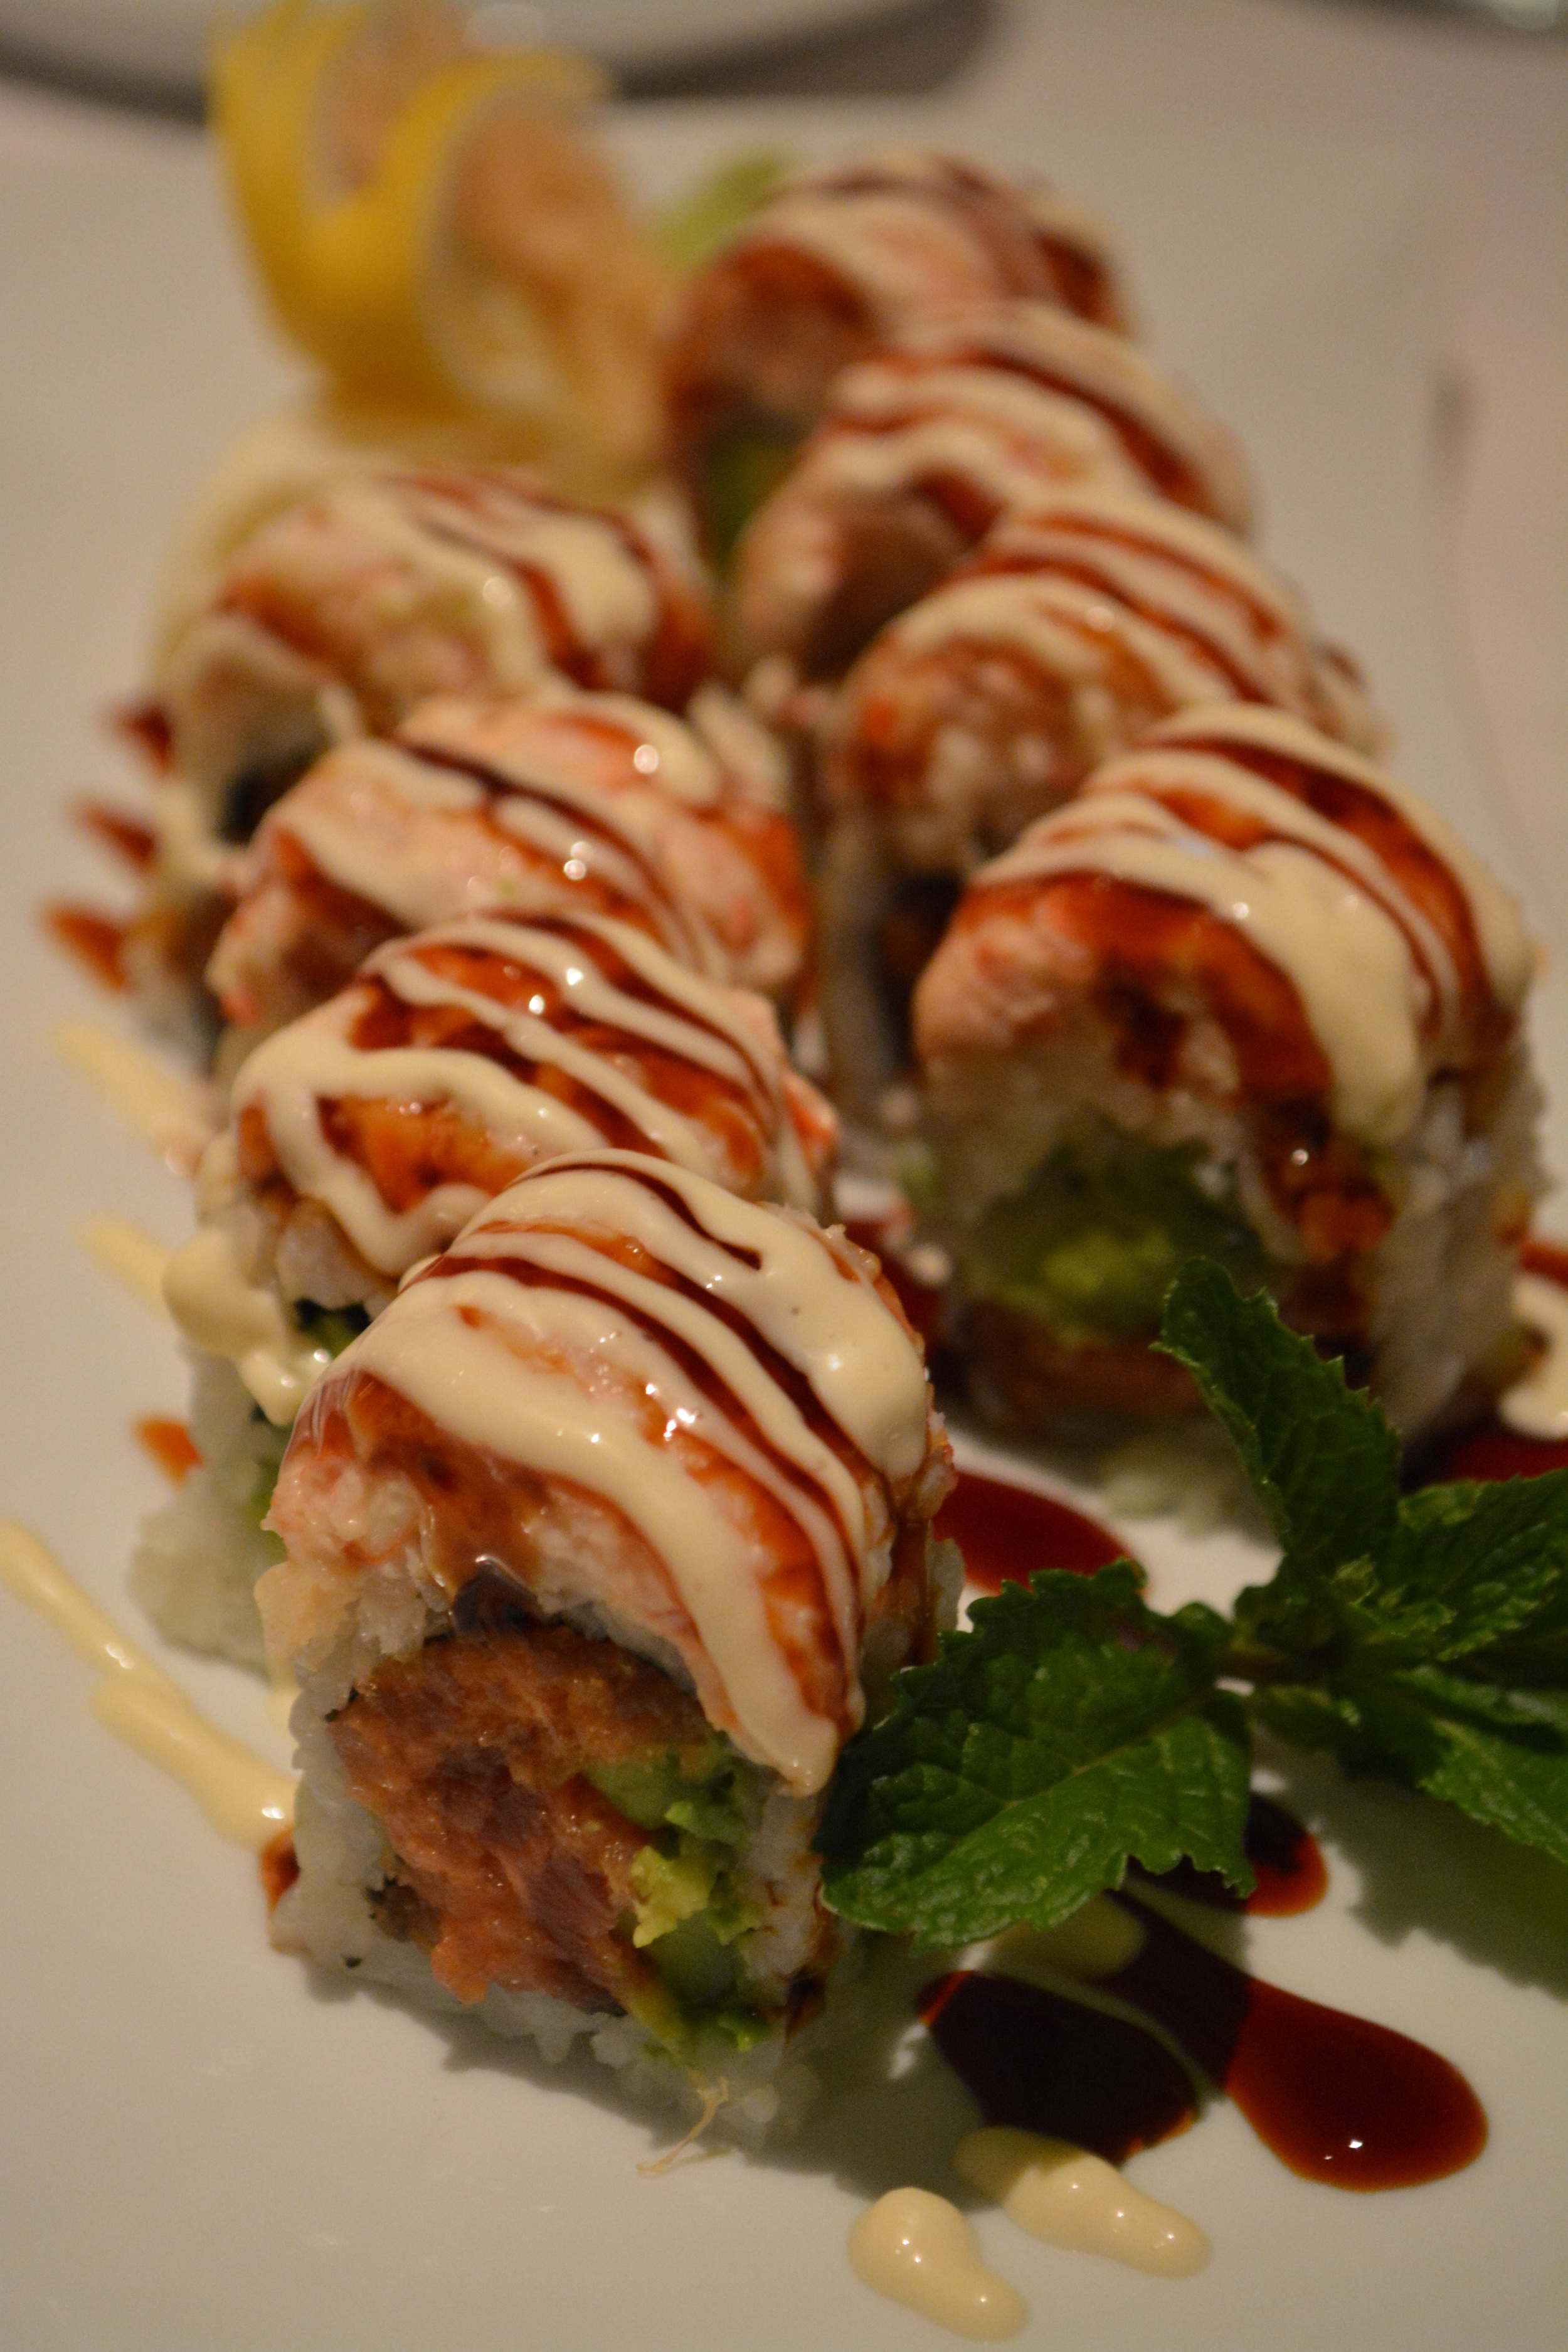 The Montauk Roll ($25) – spicy tuna, avocado, tempura crunch, topped with lobster, yuzu mayo and eel sauce